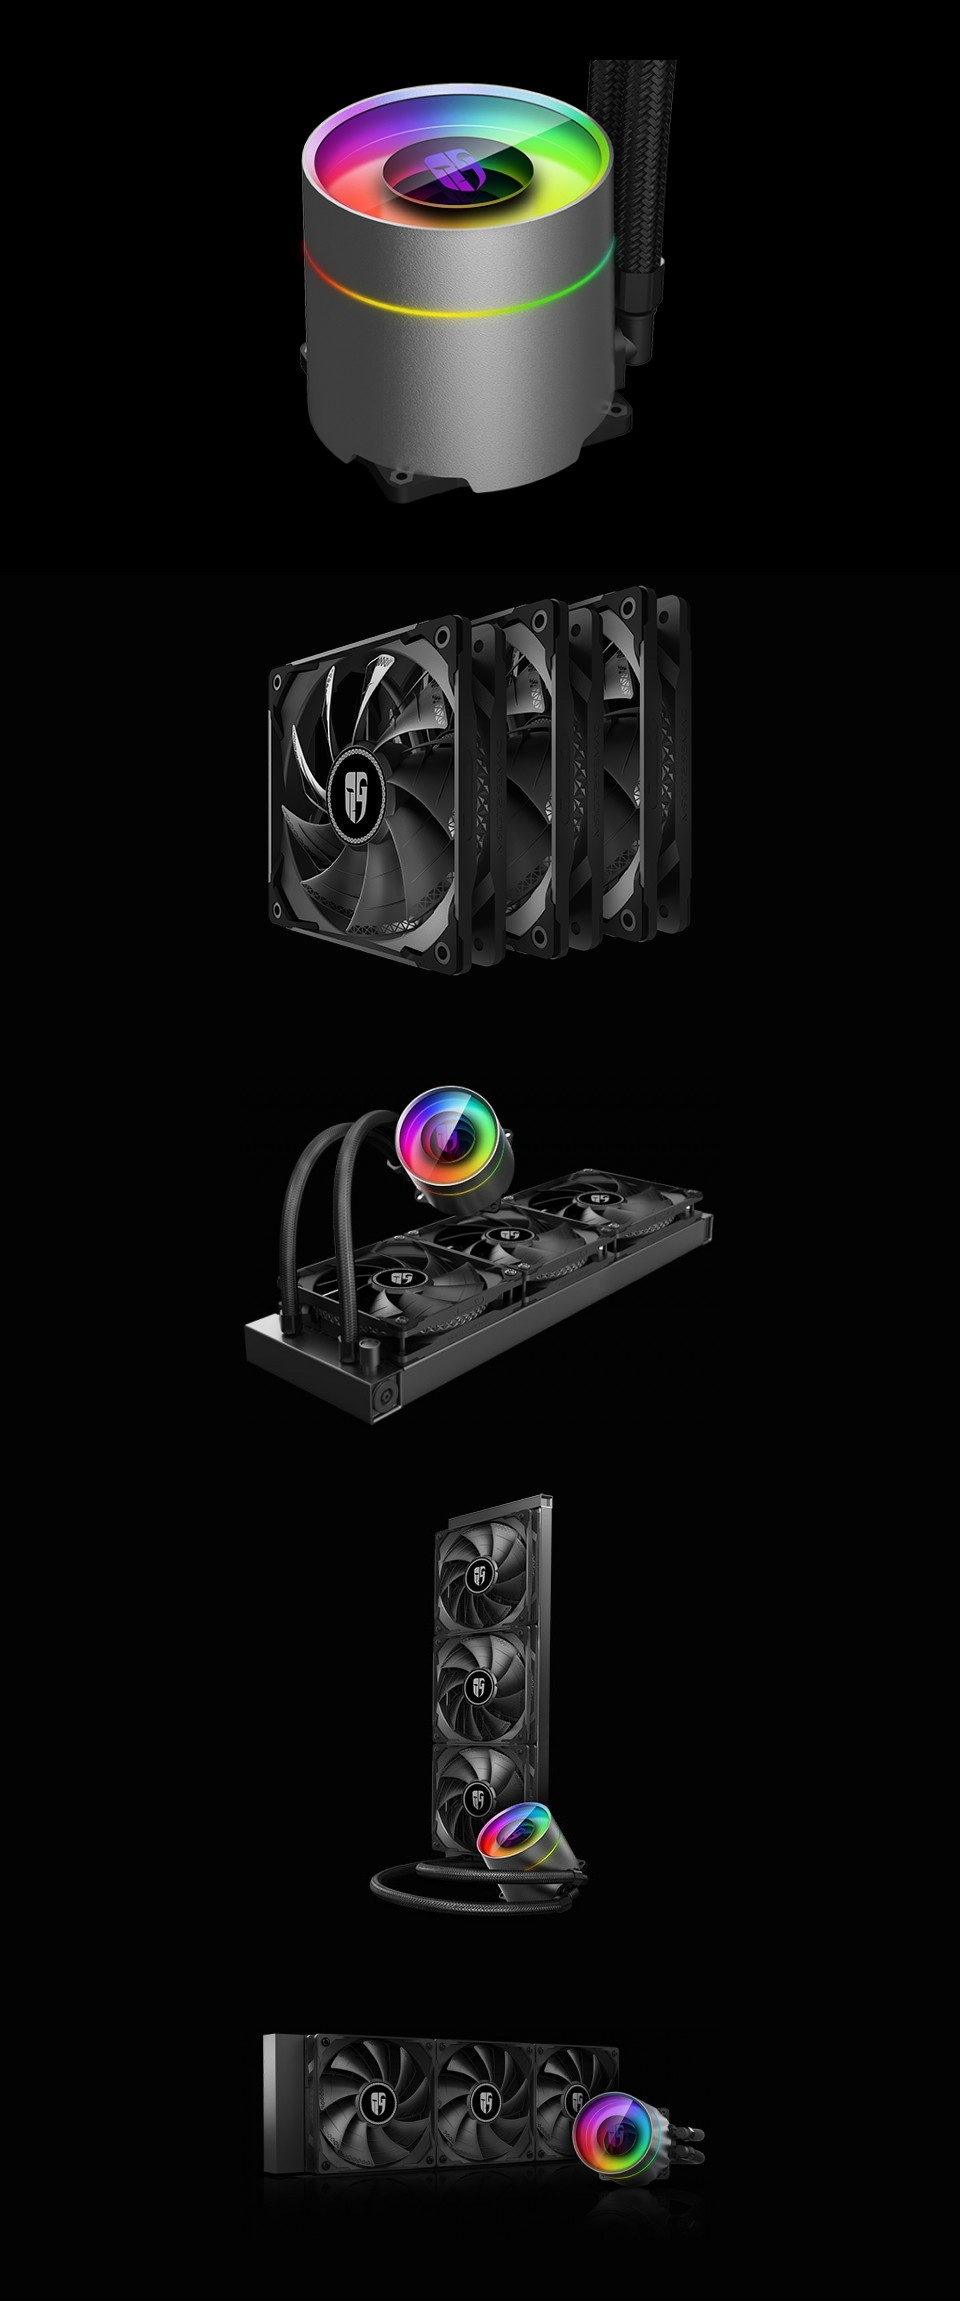 Deepcool Castle 360EX AIO Liquid CPU Cooler product